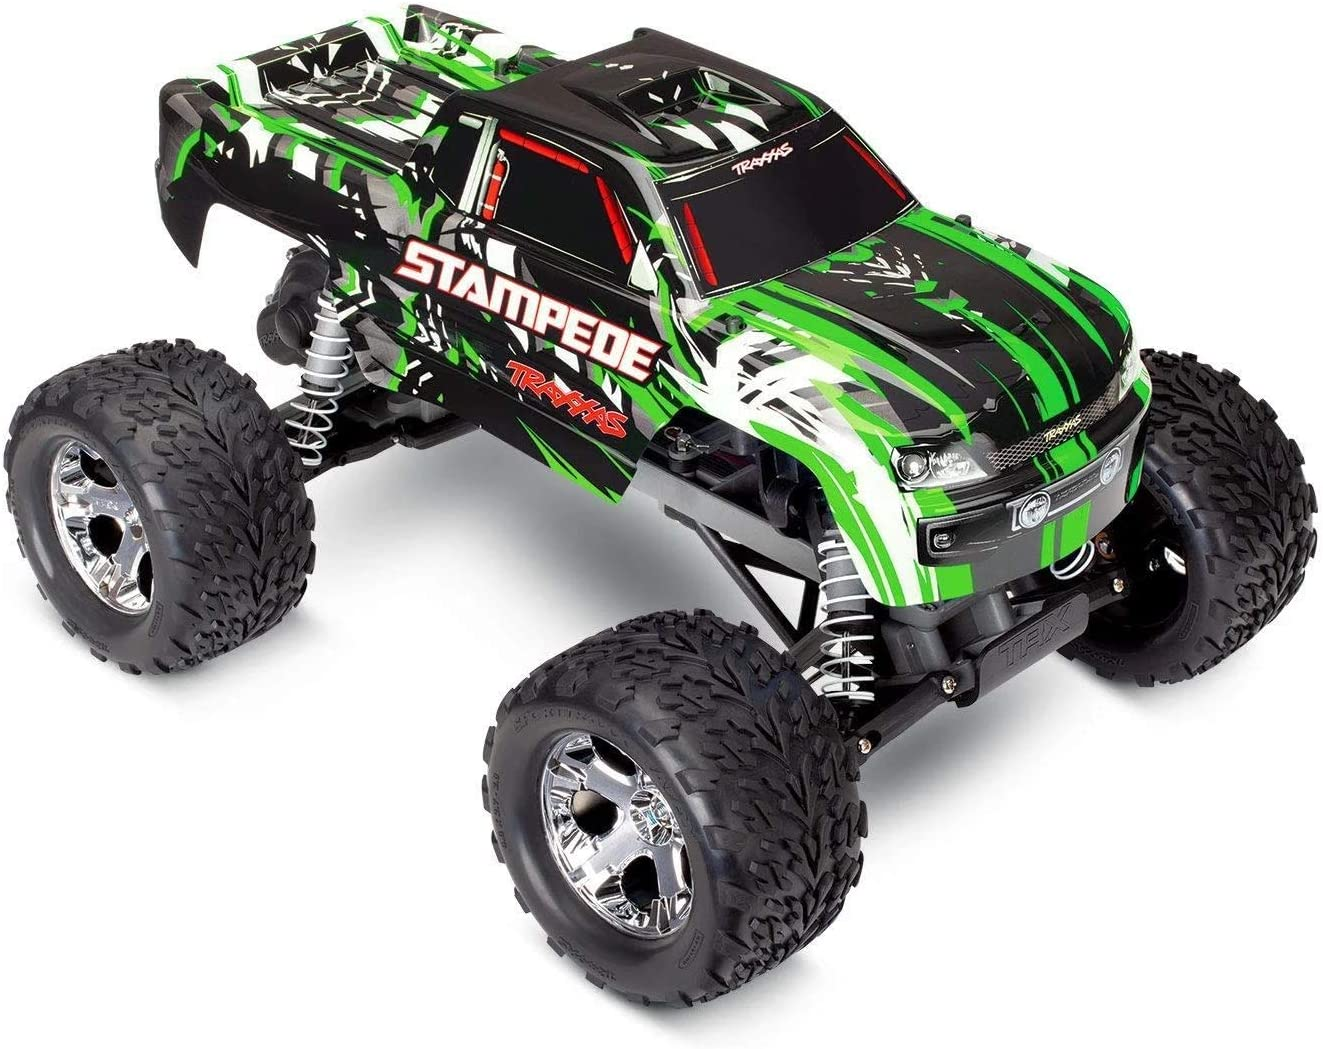 Traxxas 36054-4-GRN Stampede: 1/10 Scale Monster Truck w/ TQ 2.4GHz Radio System